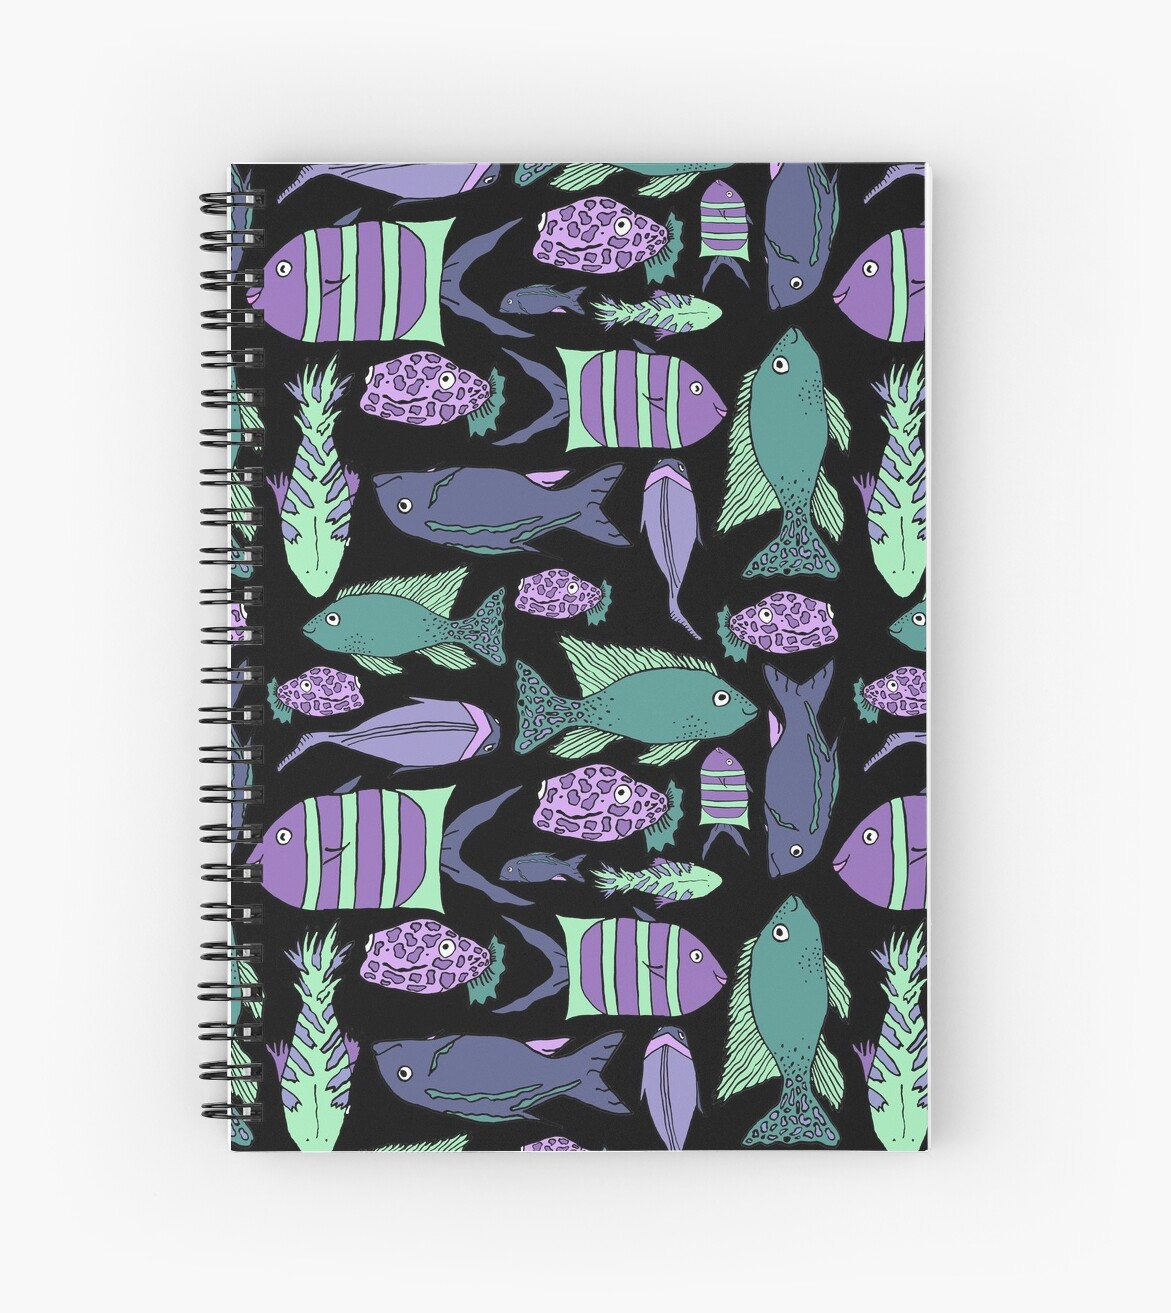 Groovy Fish - Black and Green by mkrowntree